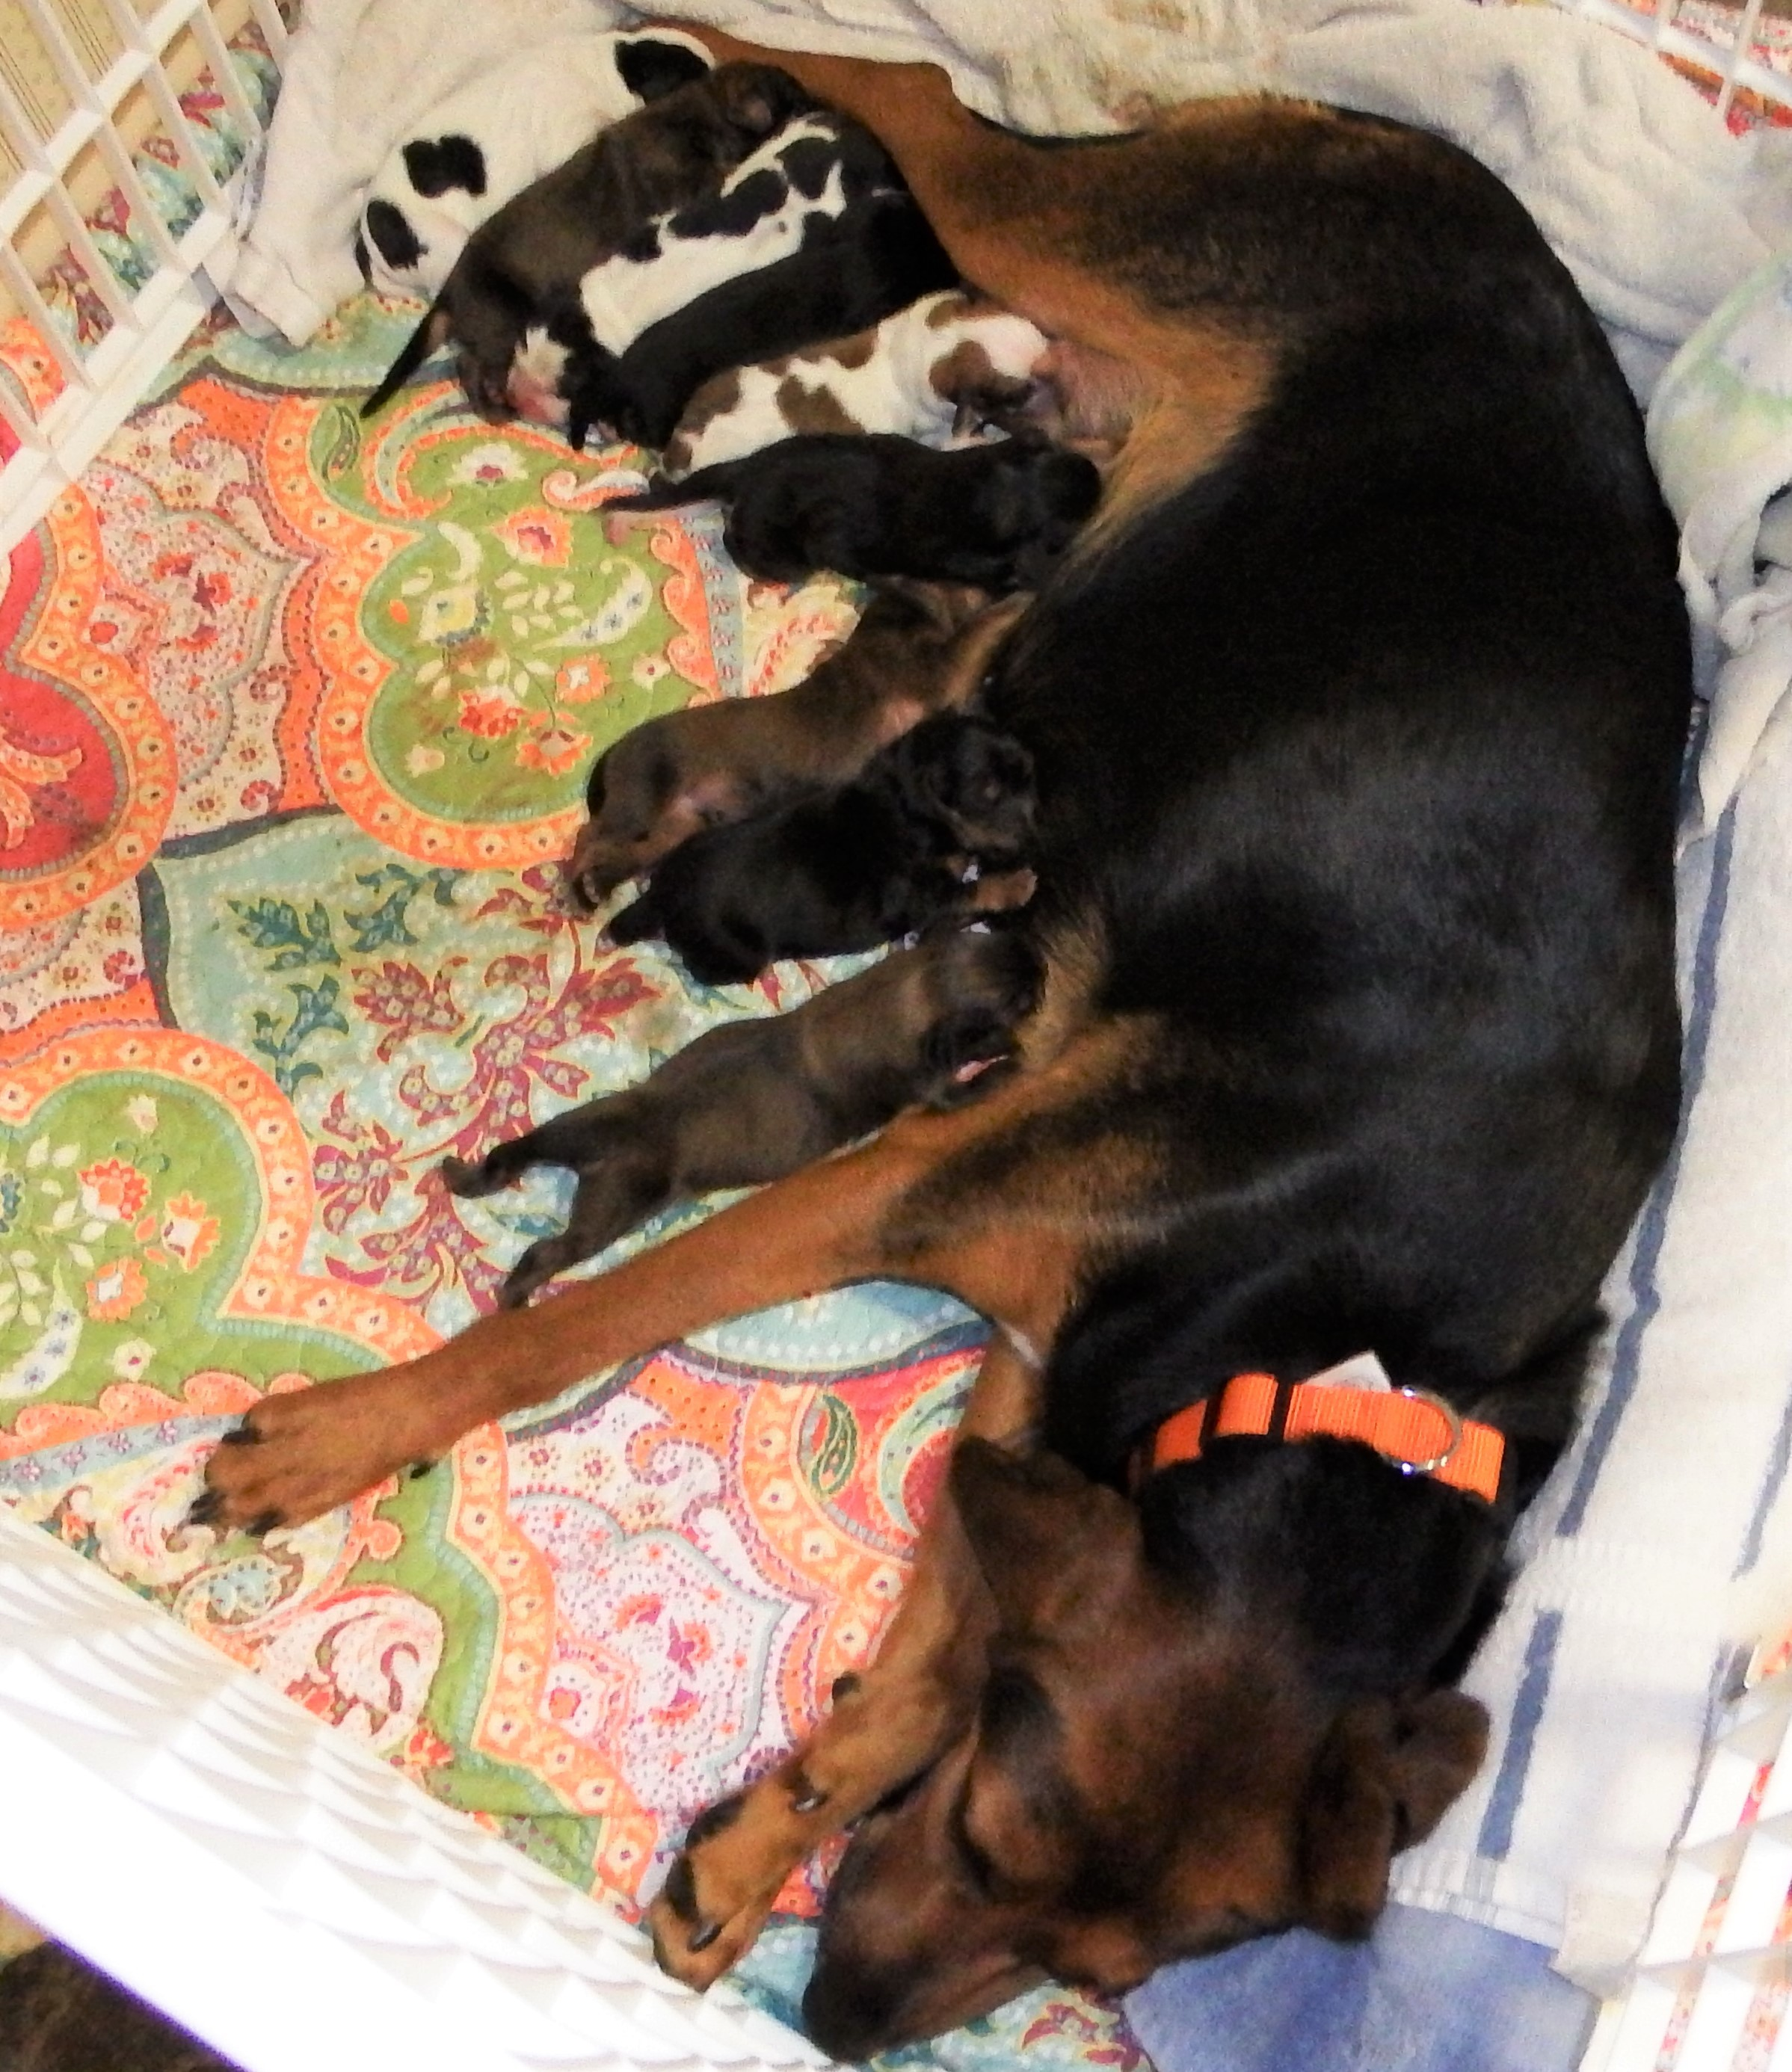 Pets for Adoption at New2U Rescues, in Rochester, NY   Petfinder